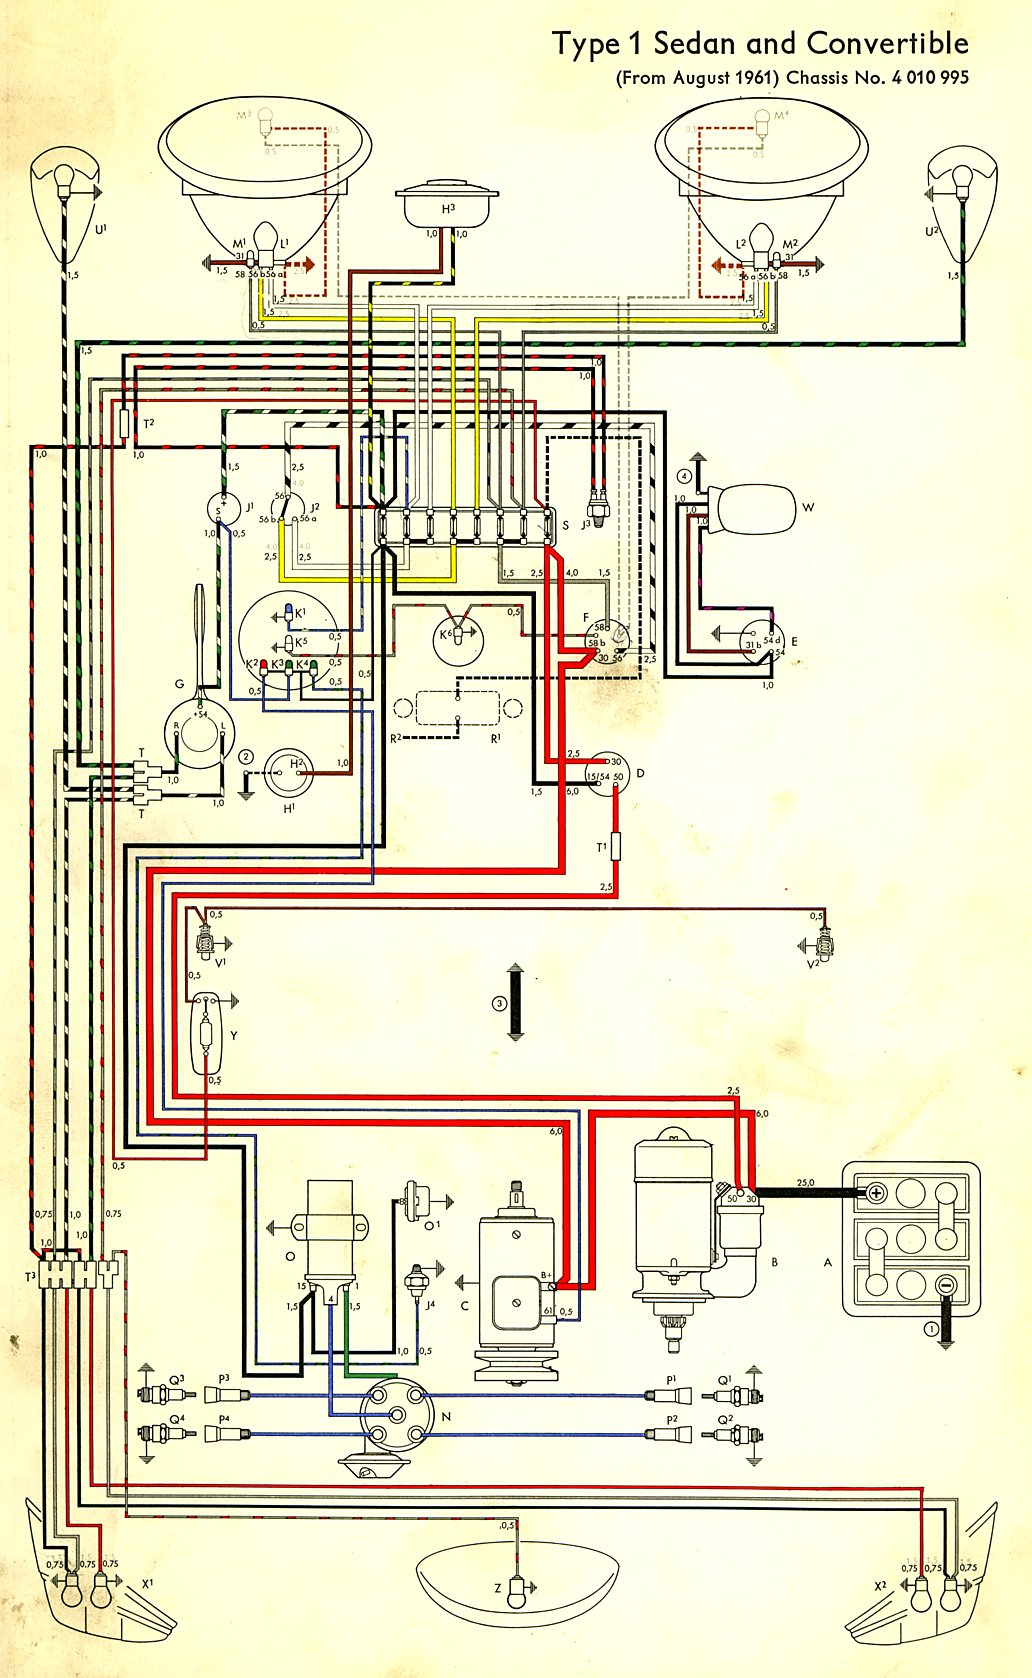 hight resolution of 1962 beetle wiring diagram thegoldenbug com wiring diagram 2003 vw beetle 1962 vw beetle wiring diagram